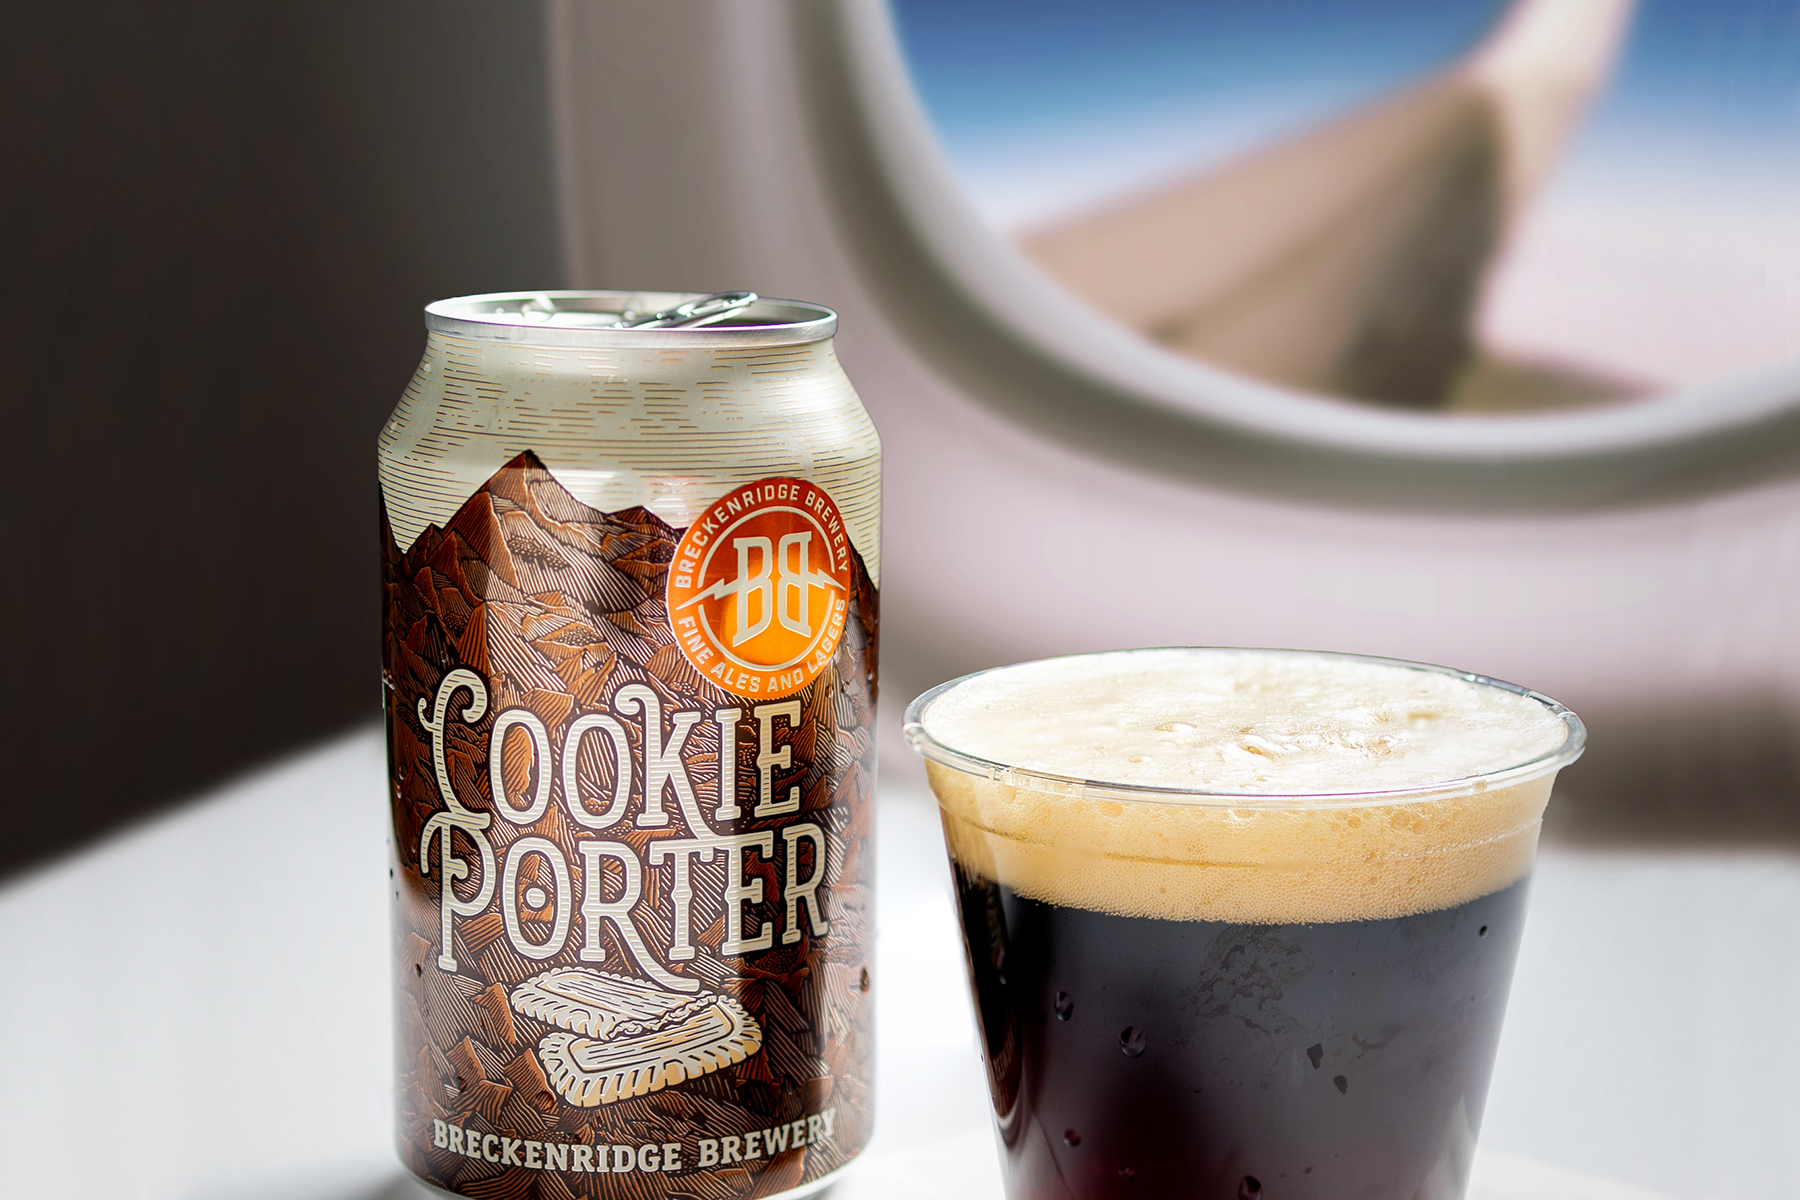 Breckenridge Cookie Porter Can and Cup on an airplane